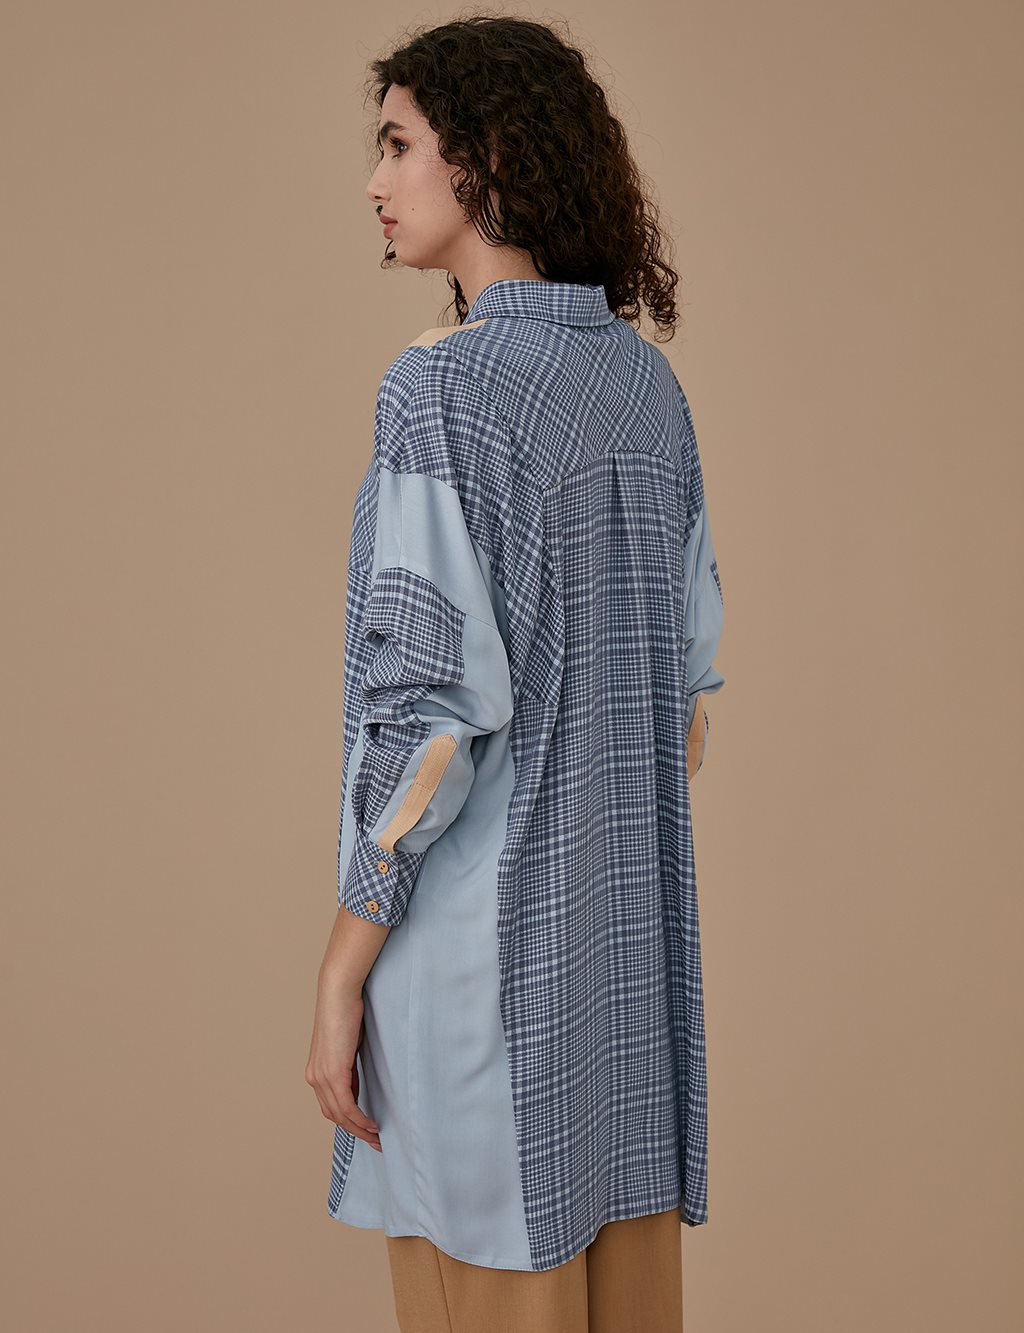 Plaid Tunic A9 21124 Grey